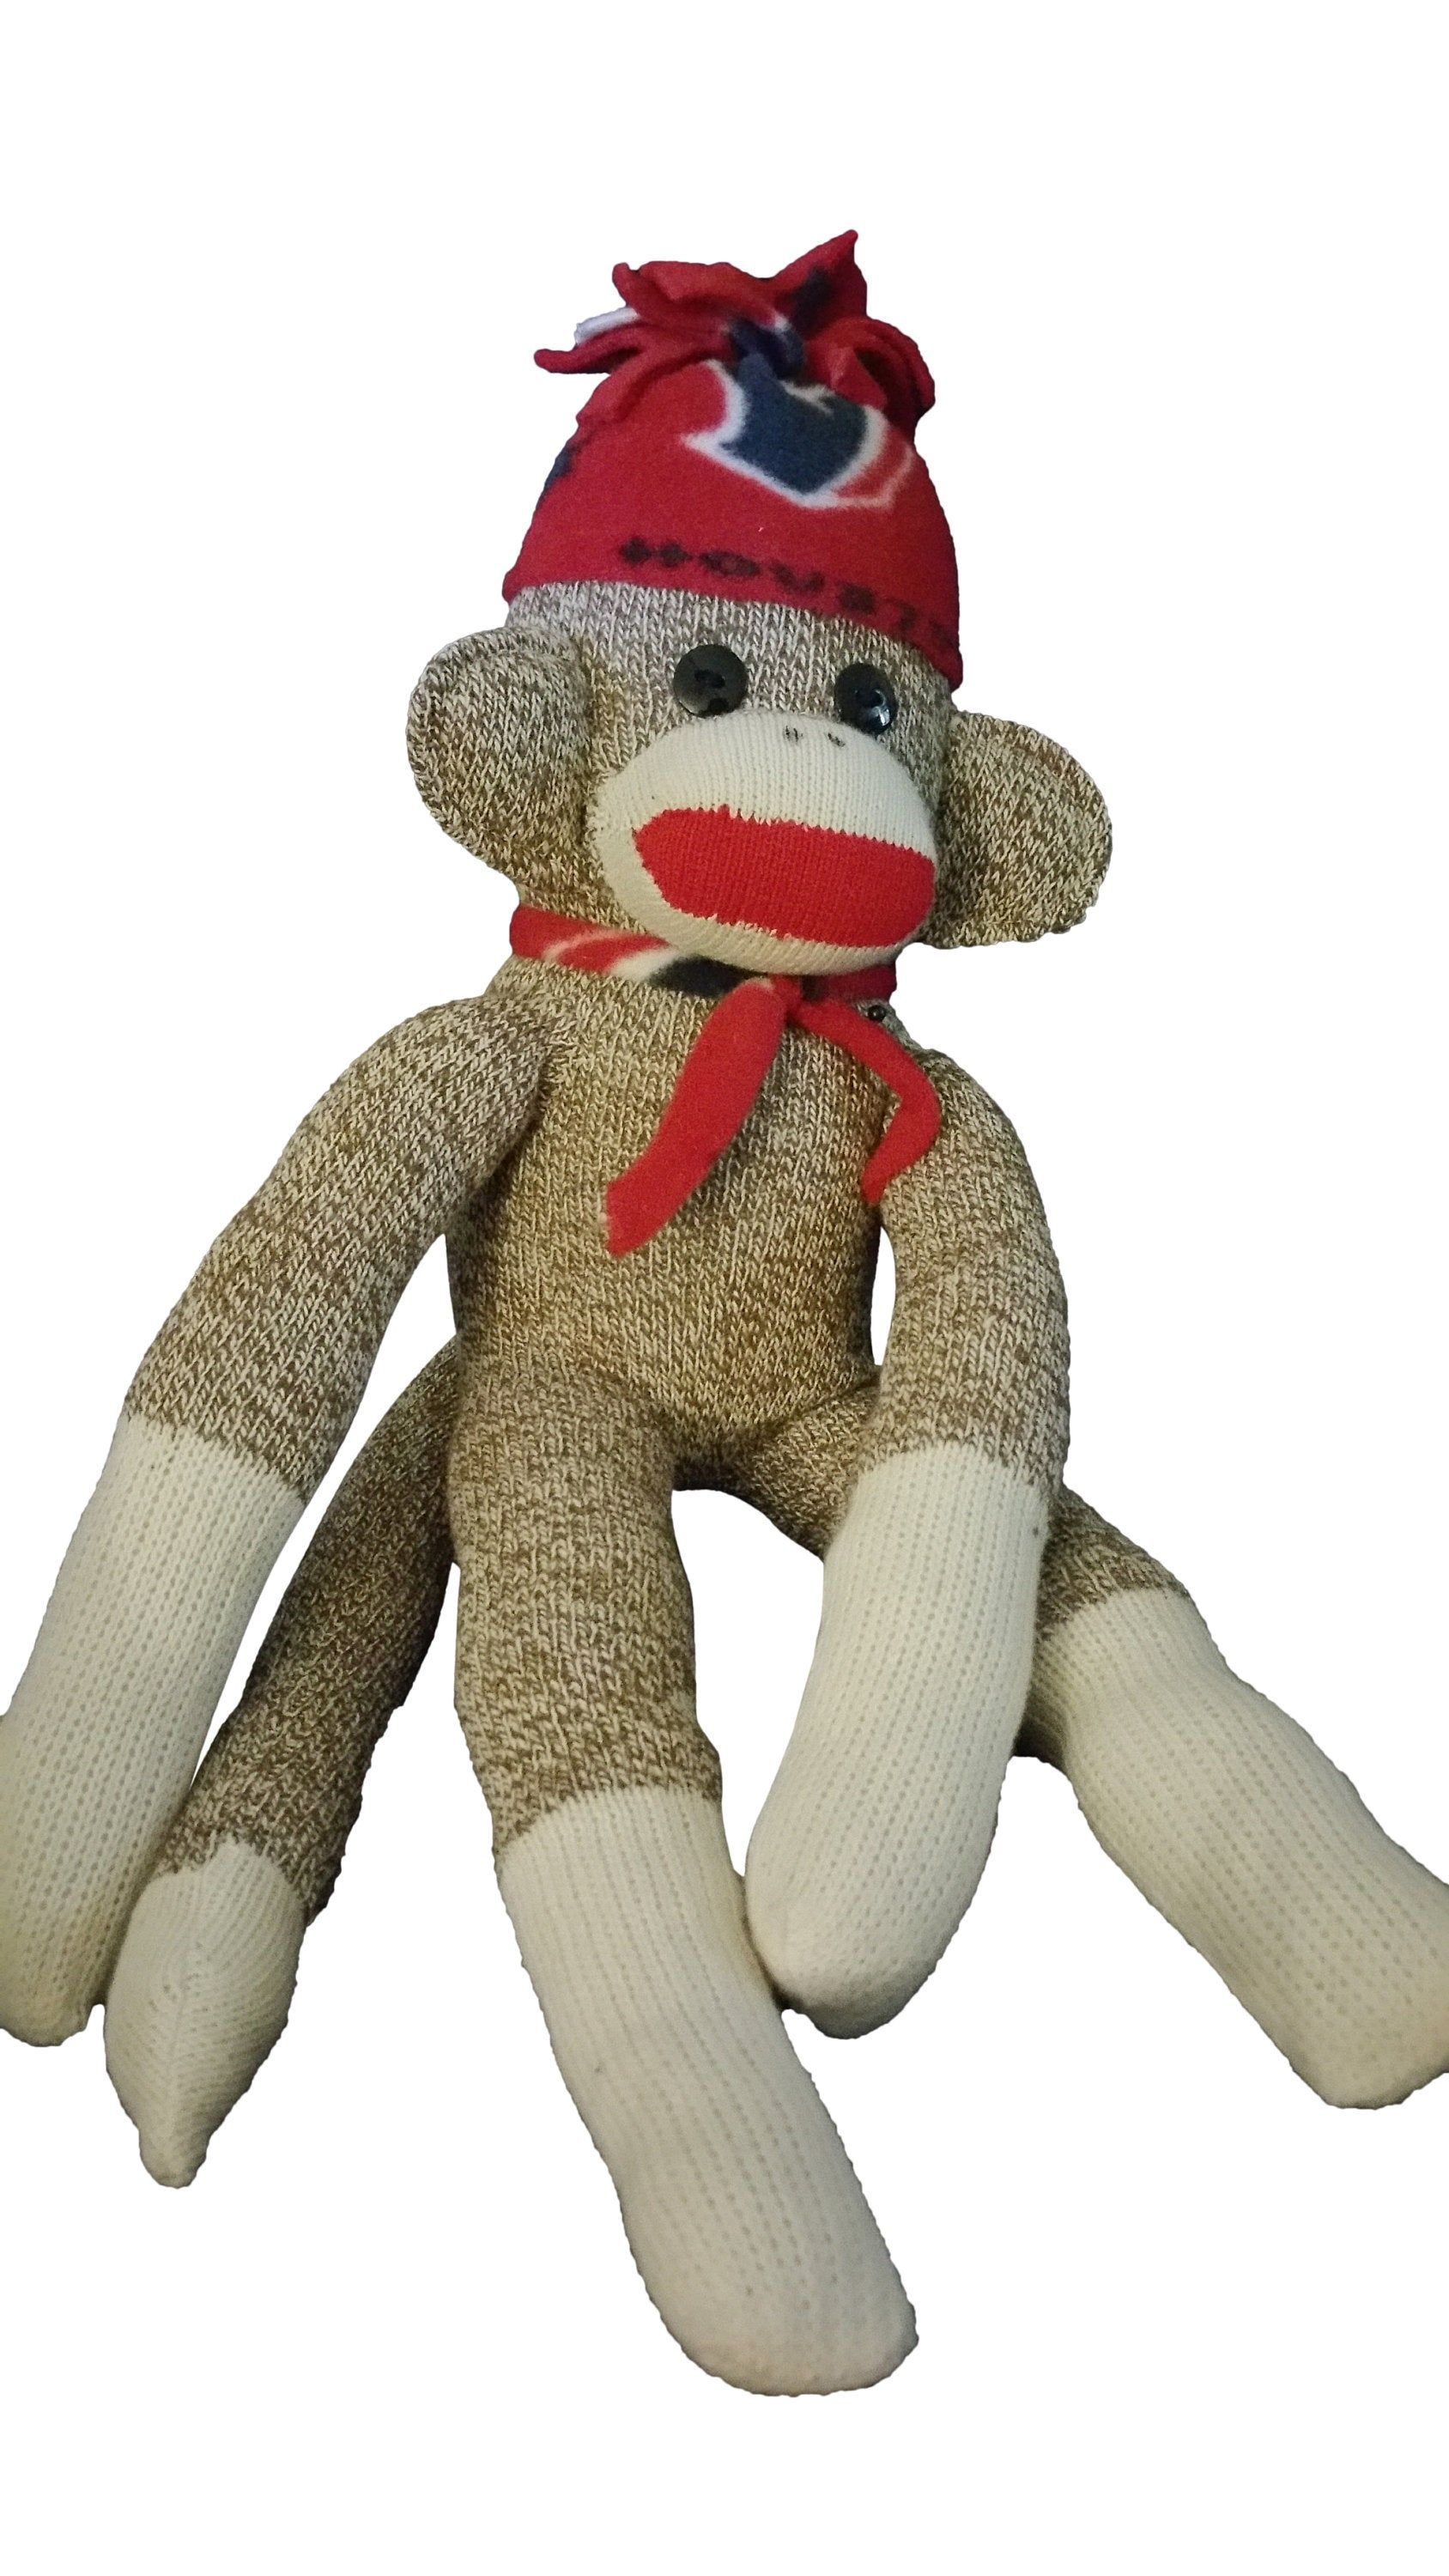 Houston Texan Stuff Sock Monkey, Houston Texan Redford Red Monkey Socks, Houston Texan Sock Monkey Gift w/ Hat & Tie #sockmoneky